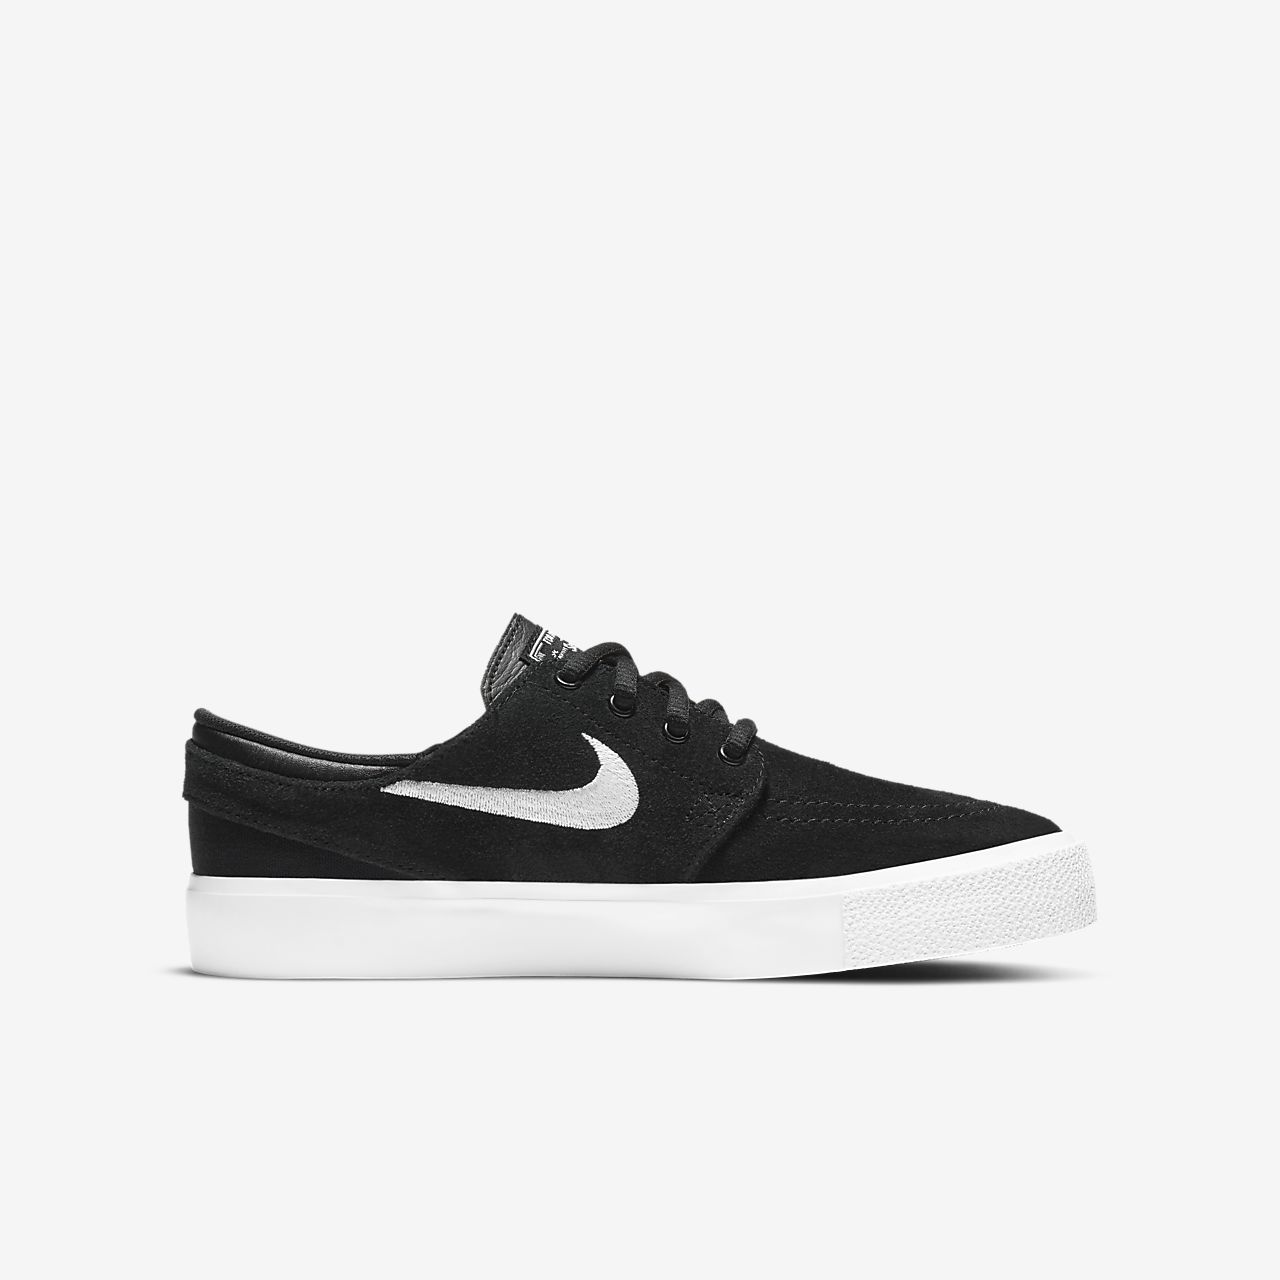 wholesale dealer 09ee5 52355 ... Nike Zoom Stefan Janoski Older Kids  Skateboarding Shoe